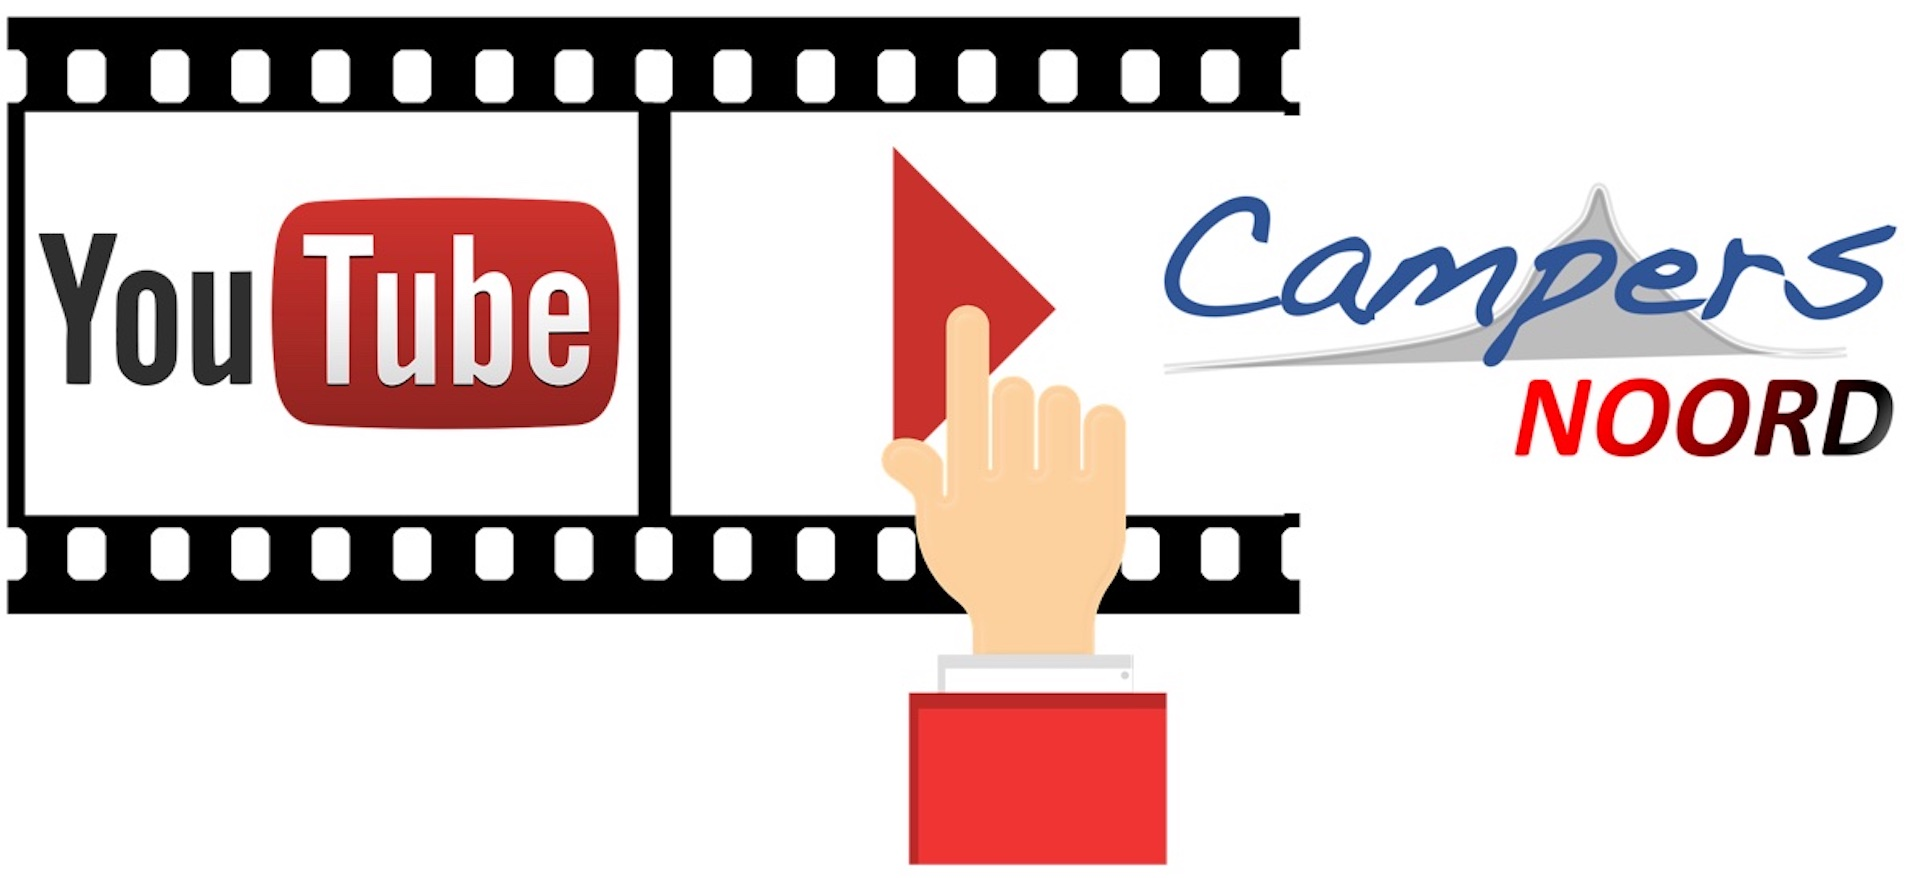 Campers Noord op Youtube